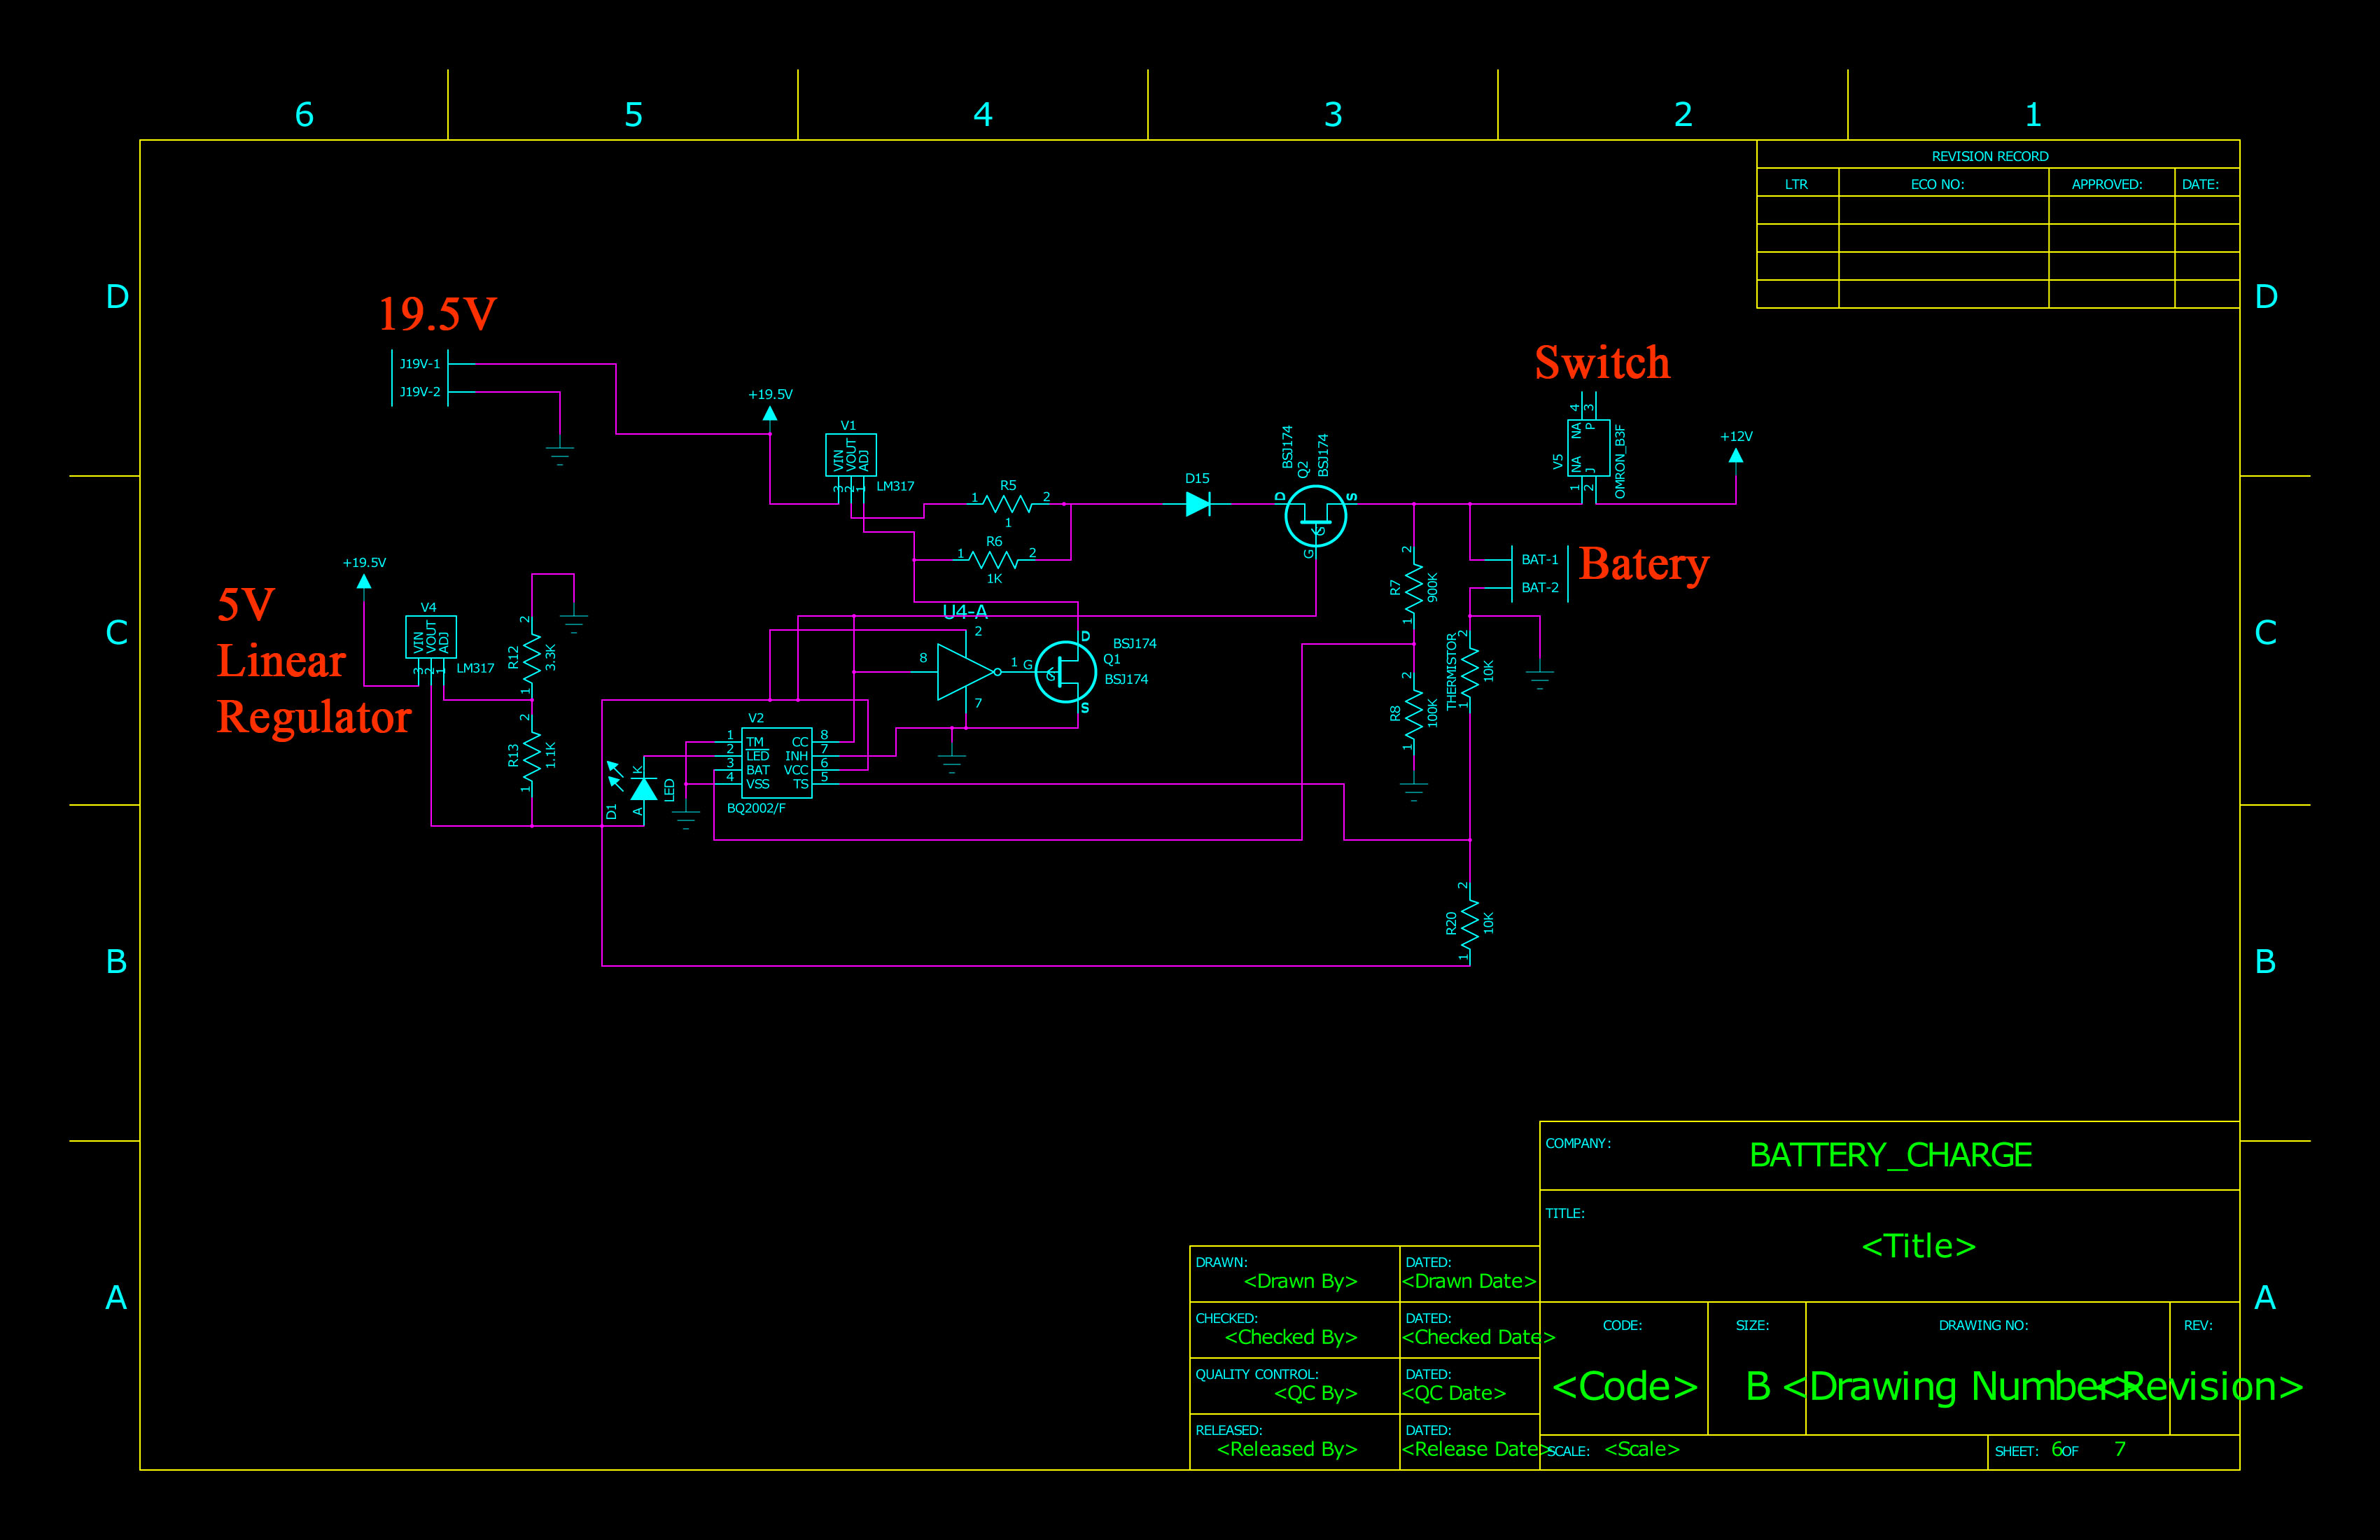 Sebastians Lab Notebook The Lm317 Acts As A Current Regulator It Is Connected To Battery Recharging Circuit Schematic